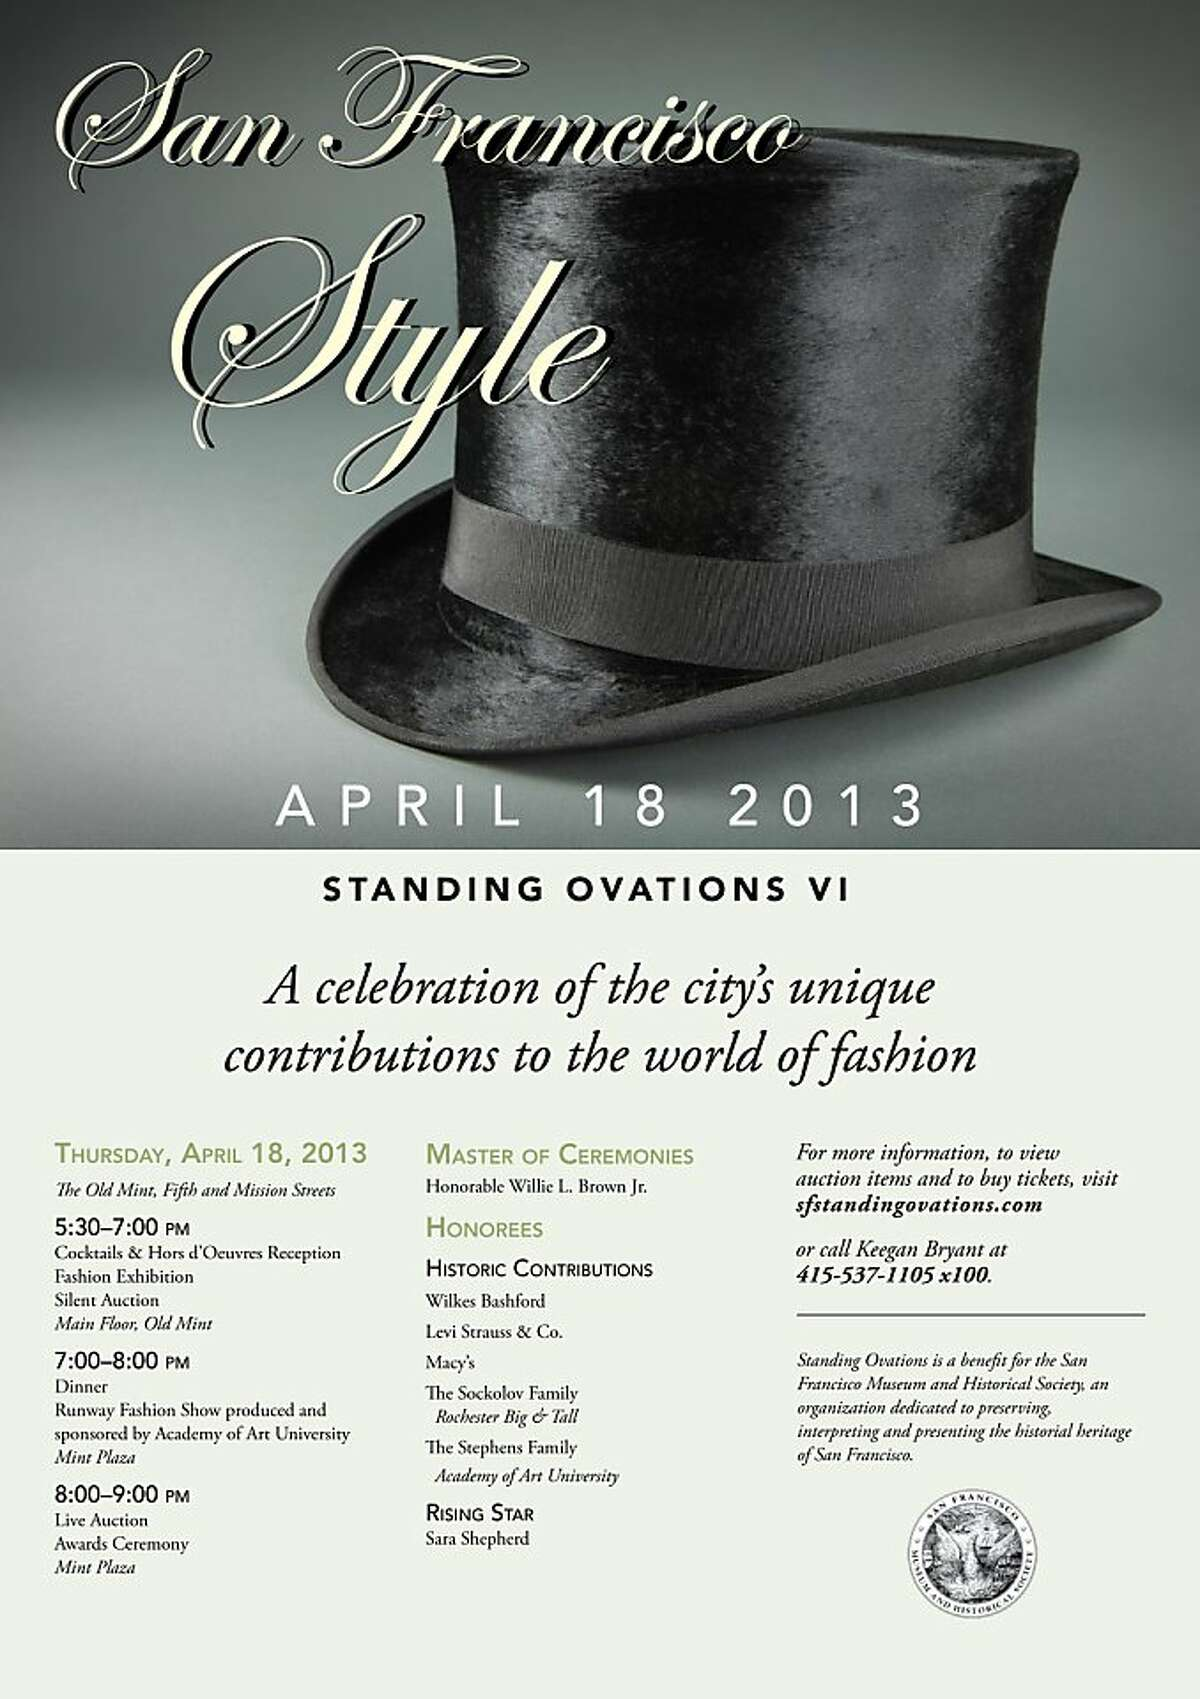 Standing Ovations VI?'San Francisco Style takes place April 18 at the Old Mint and honors local fashion retailers including Macy?•s, Wilkes Bashford and Academy of Art University.